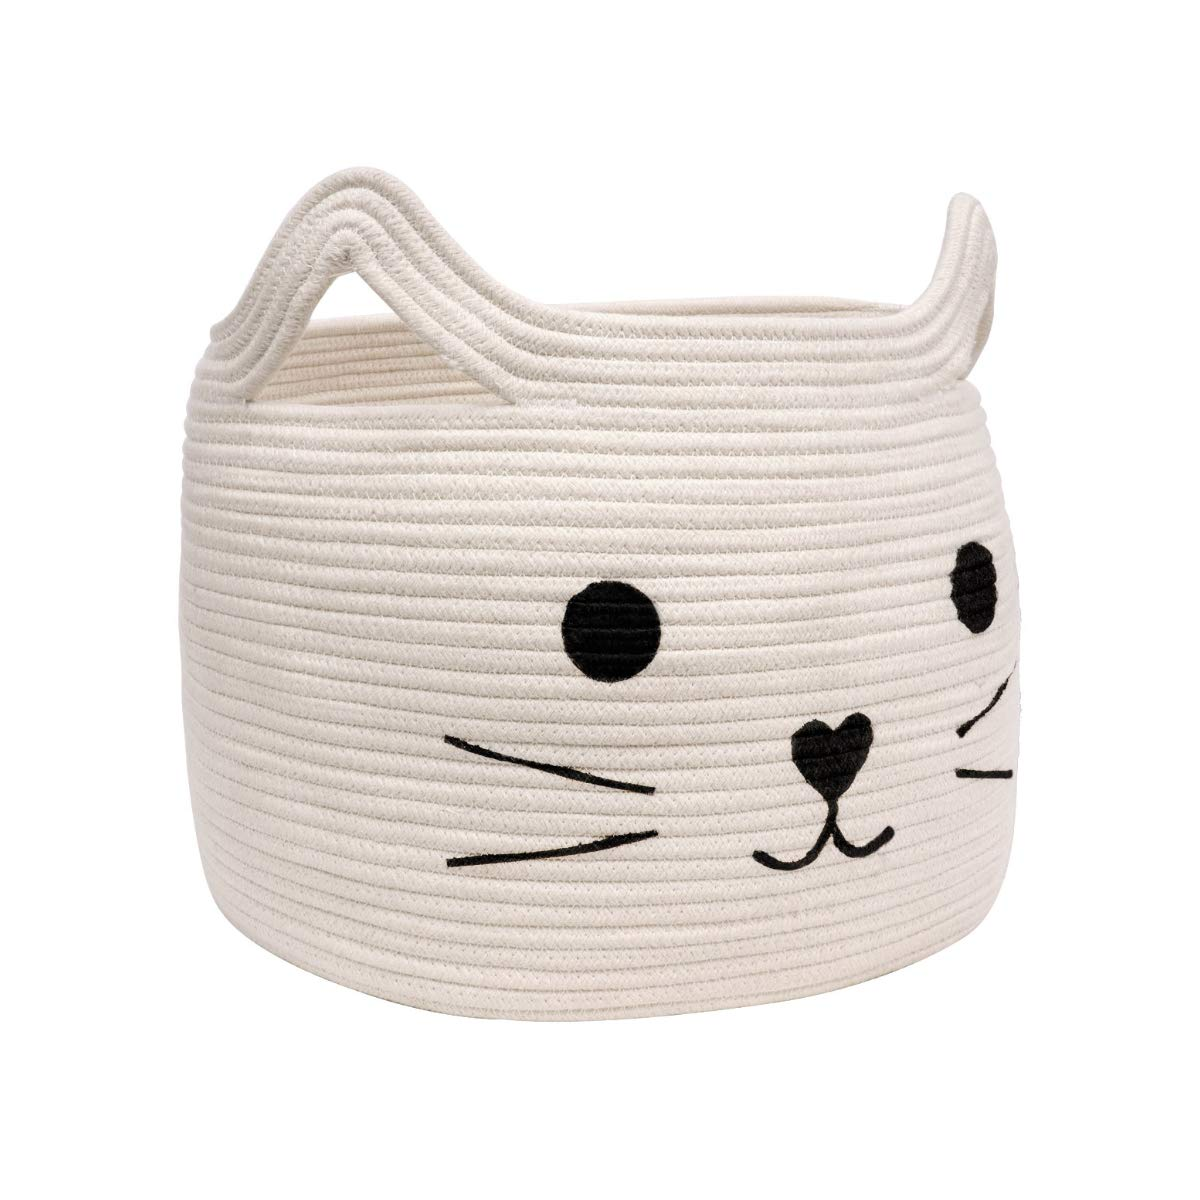 HiChen Large Woven Cotton Rope Storage Basket, Laundry Basket Organizer for Towels, Blanket, Toys, Clothes, Gifts | Pet Gift Basket for Cat, Dog - 15.7'' L×13'' W×13.4'' H